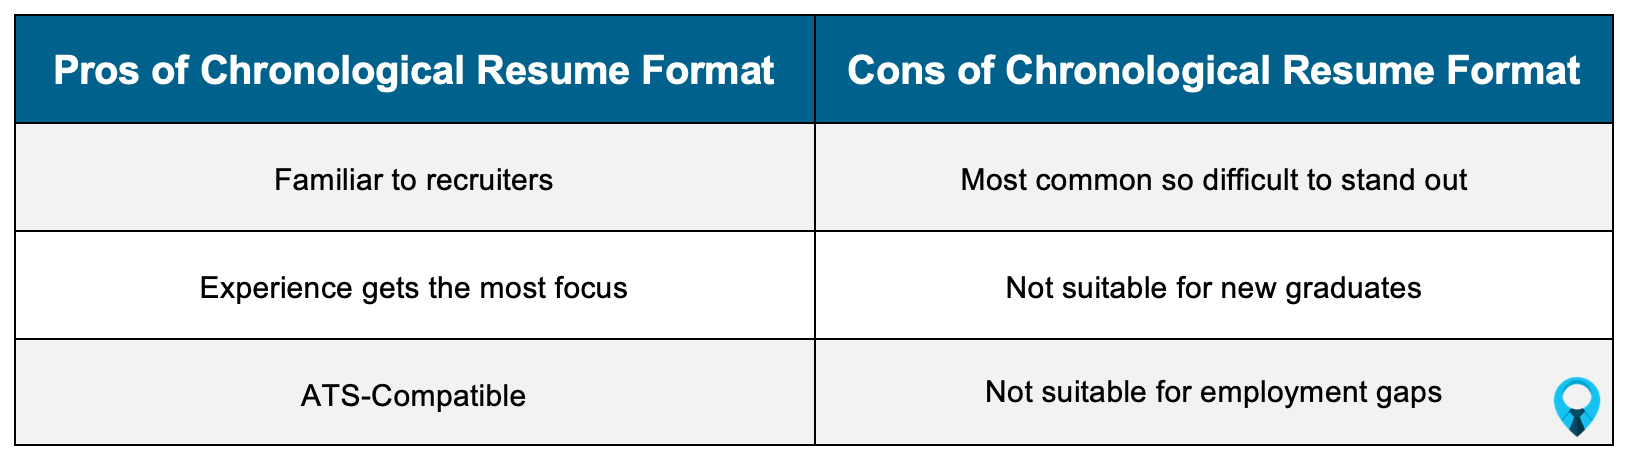 Pros and Cons of Chronological Resume Format